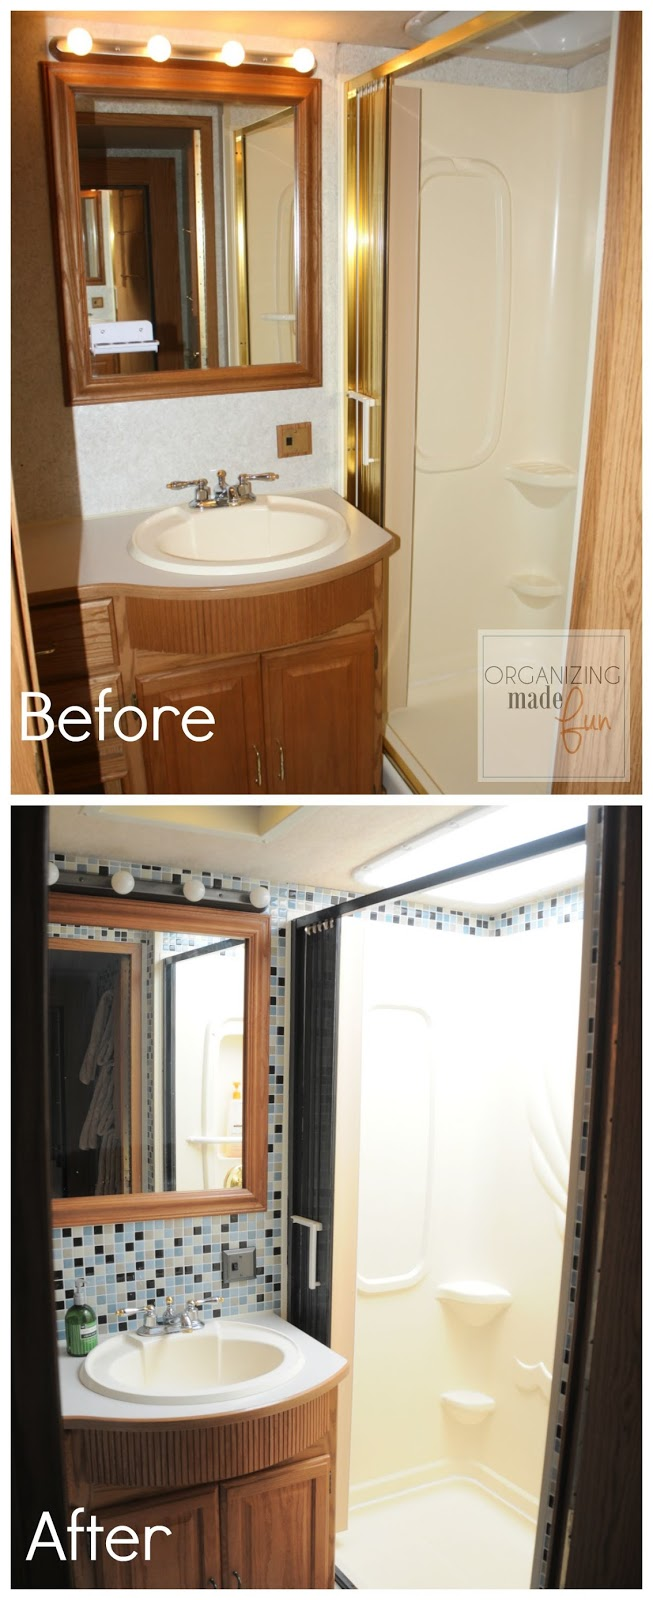 RV bathroom BEFORE with brass shower :: OrganizingMade Fun.com